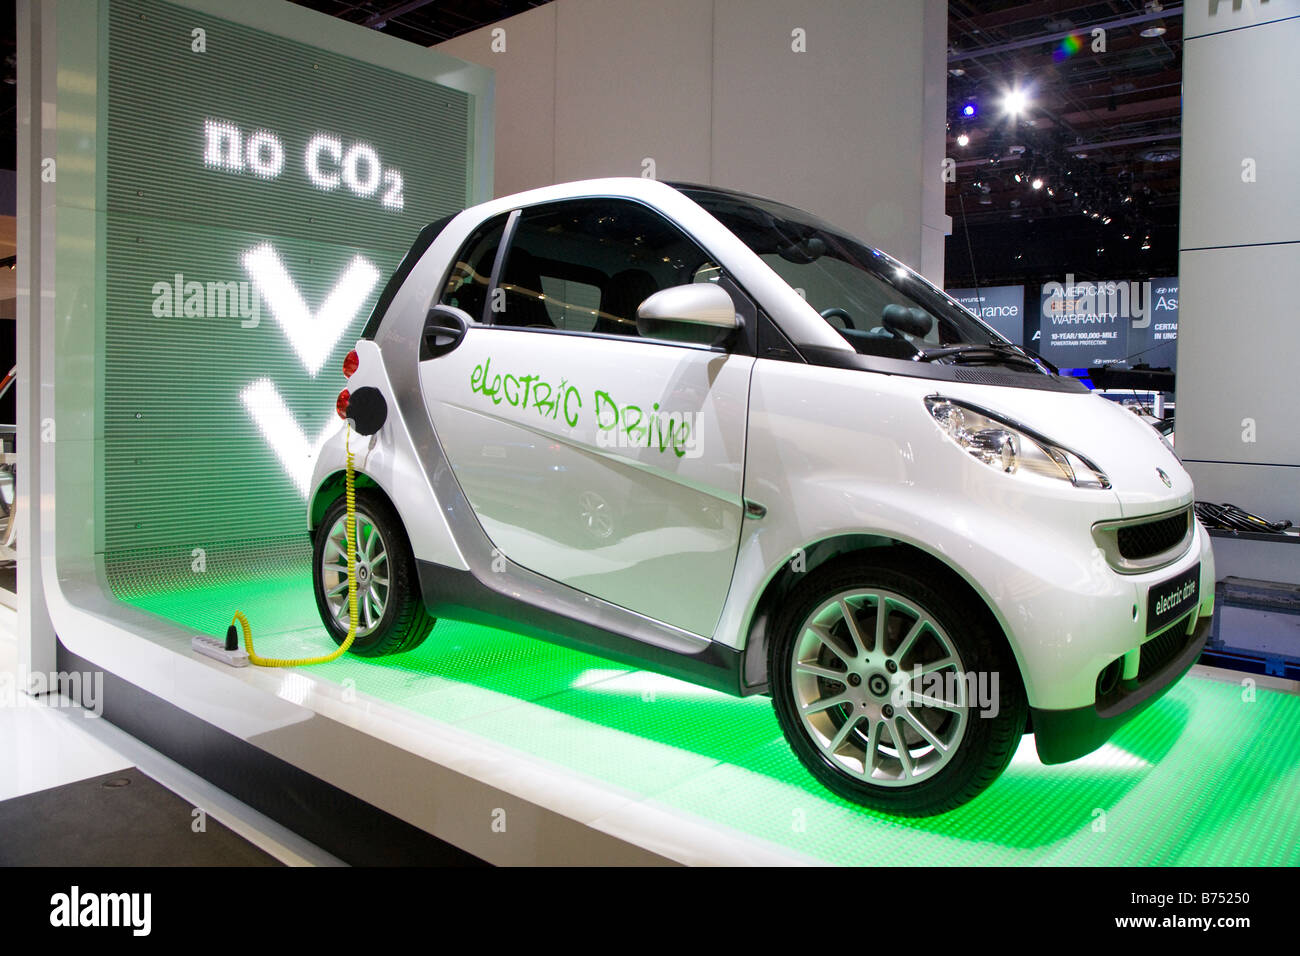 Detroit Michigan The Smart electric car on display at the North American International Auto Show - Stock Image